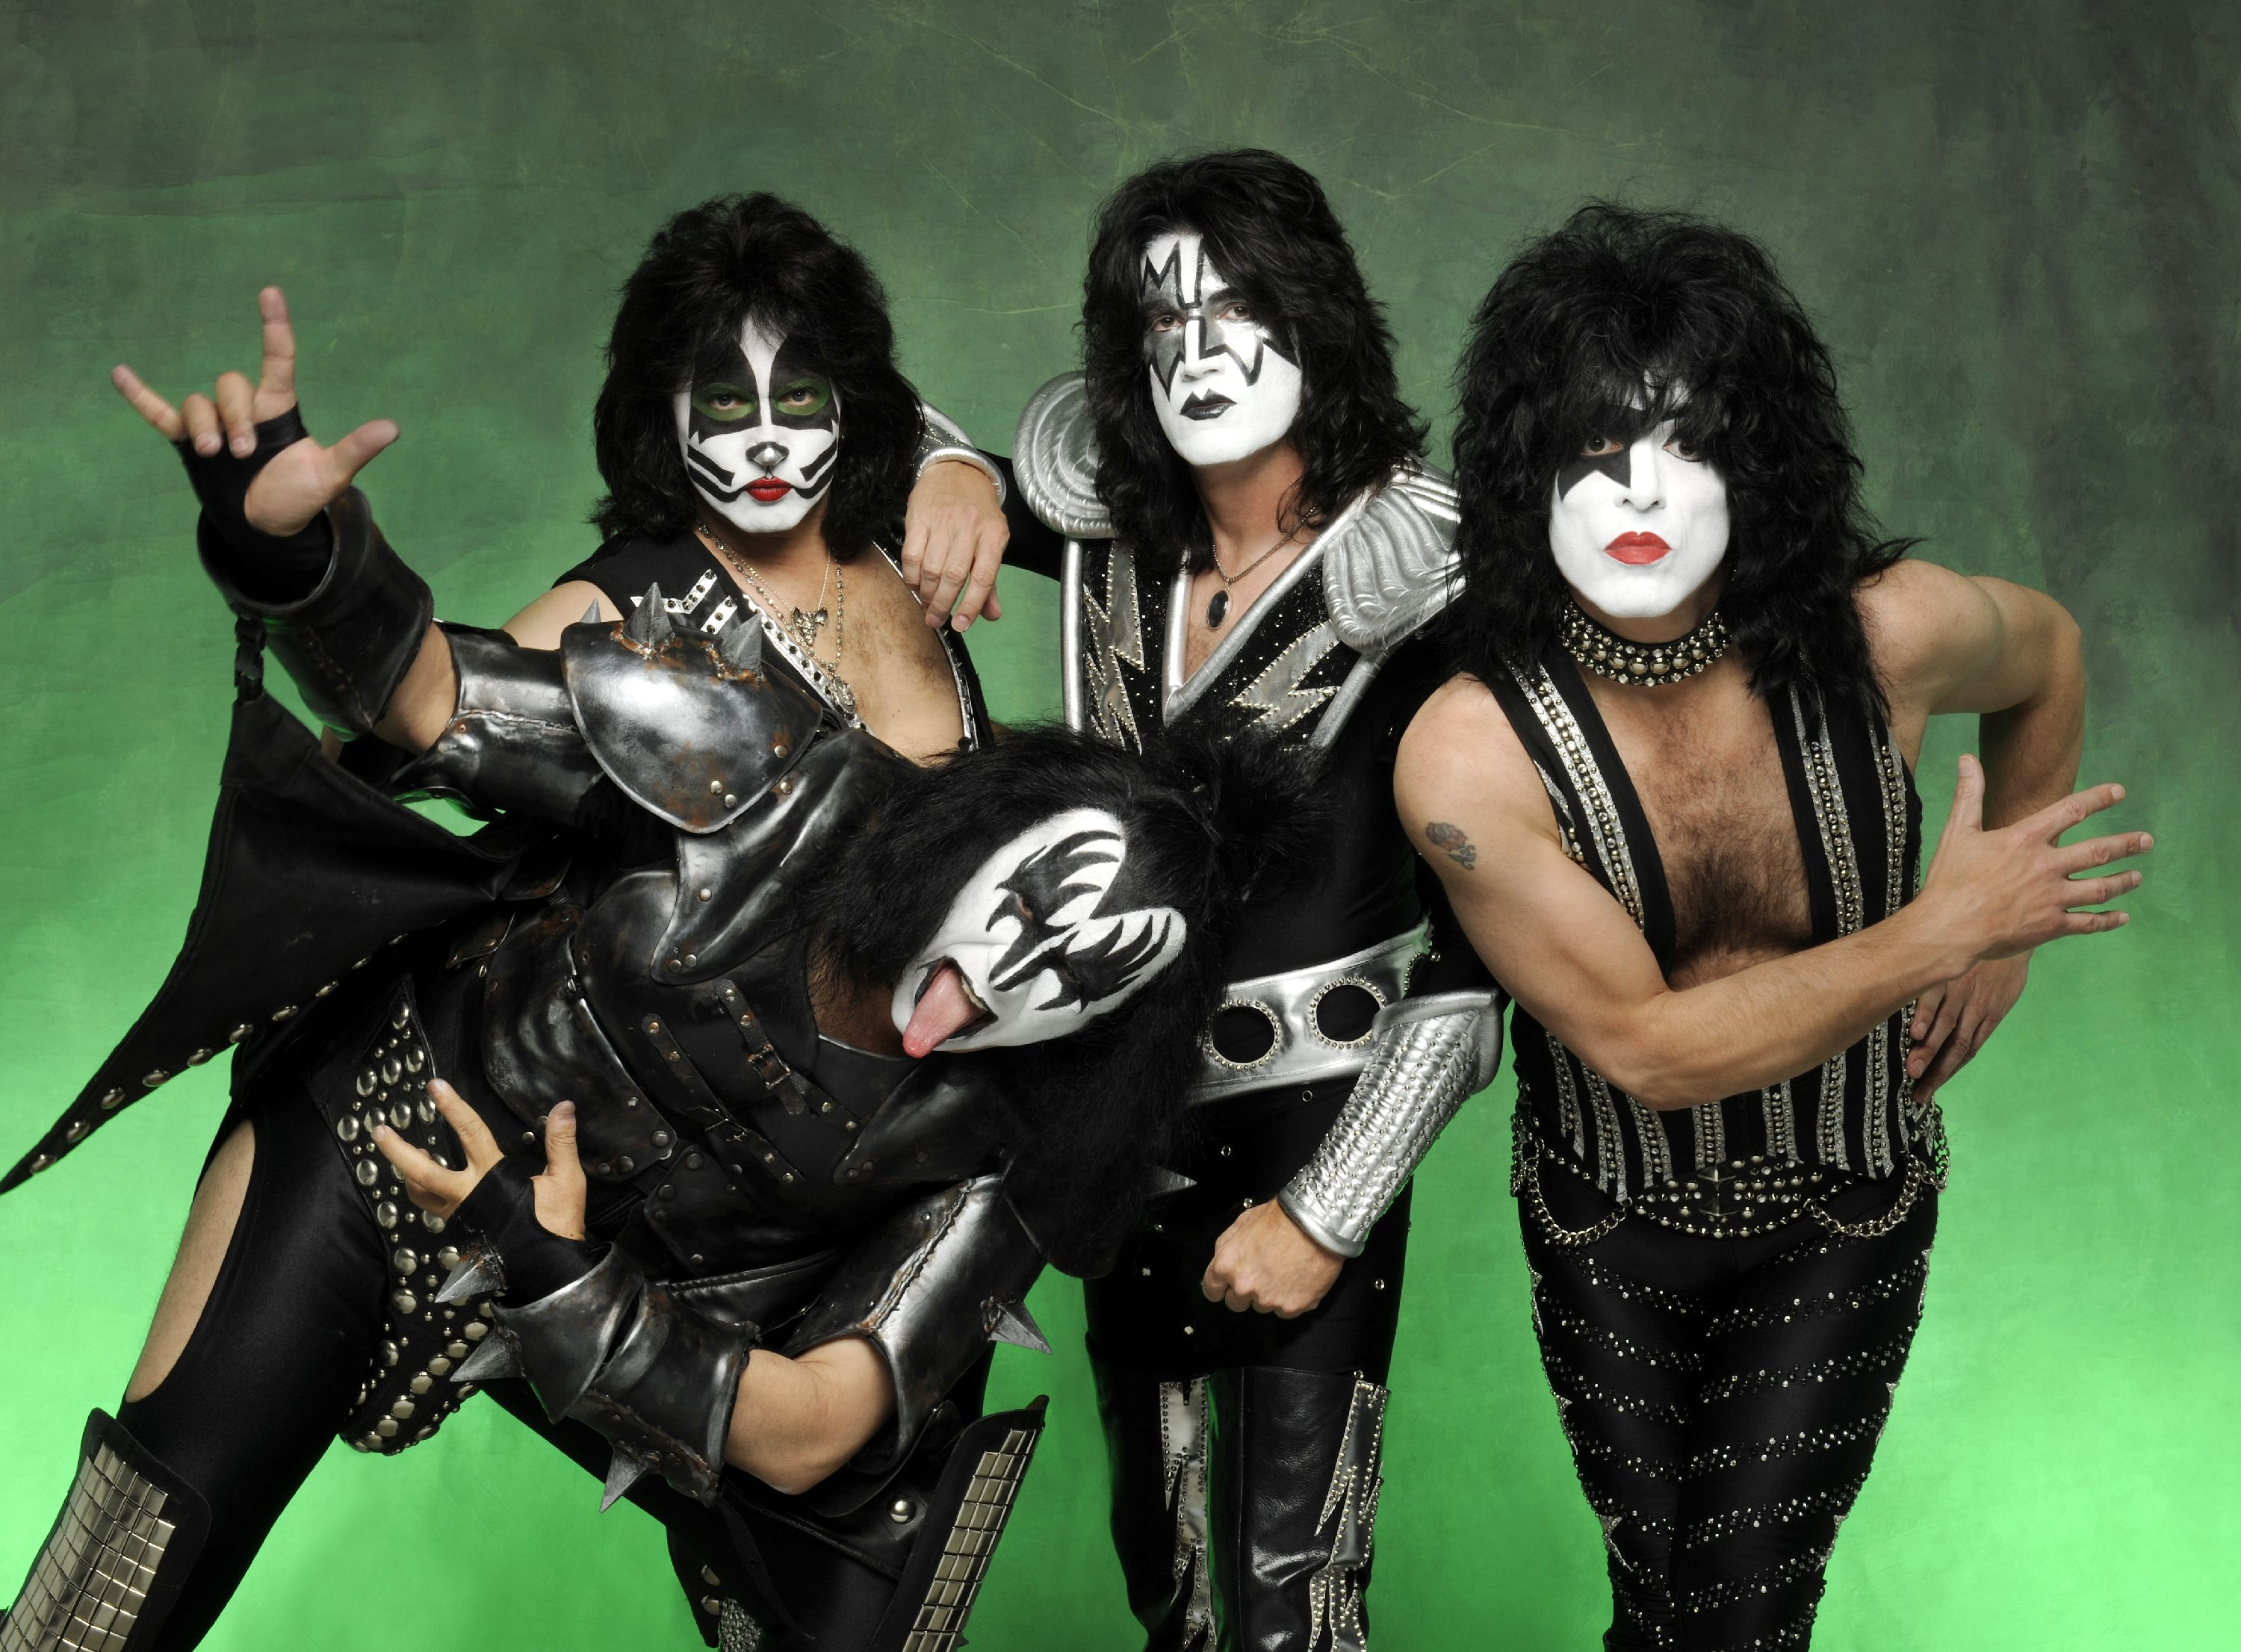 ROCK BAND KISS JOIN FORCES TO BRING FANS A FIRST OF ITS KIND LIVE 3000x2212